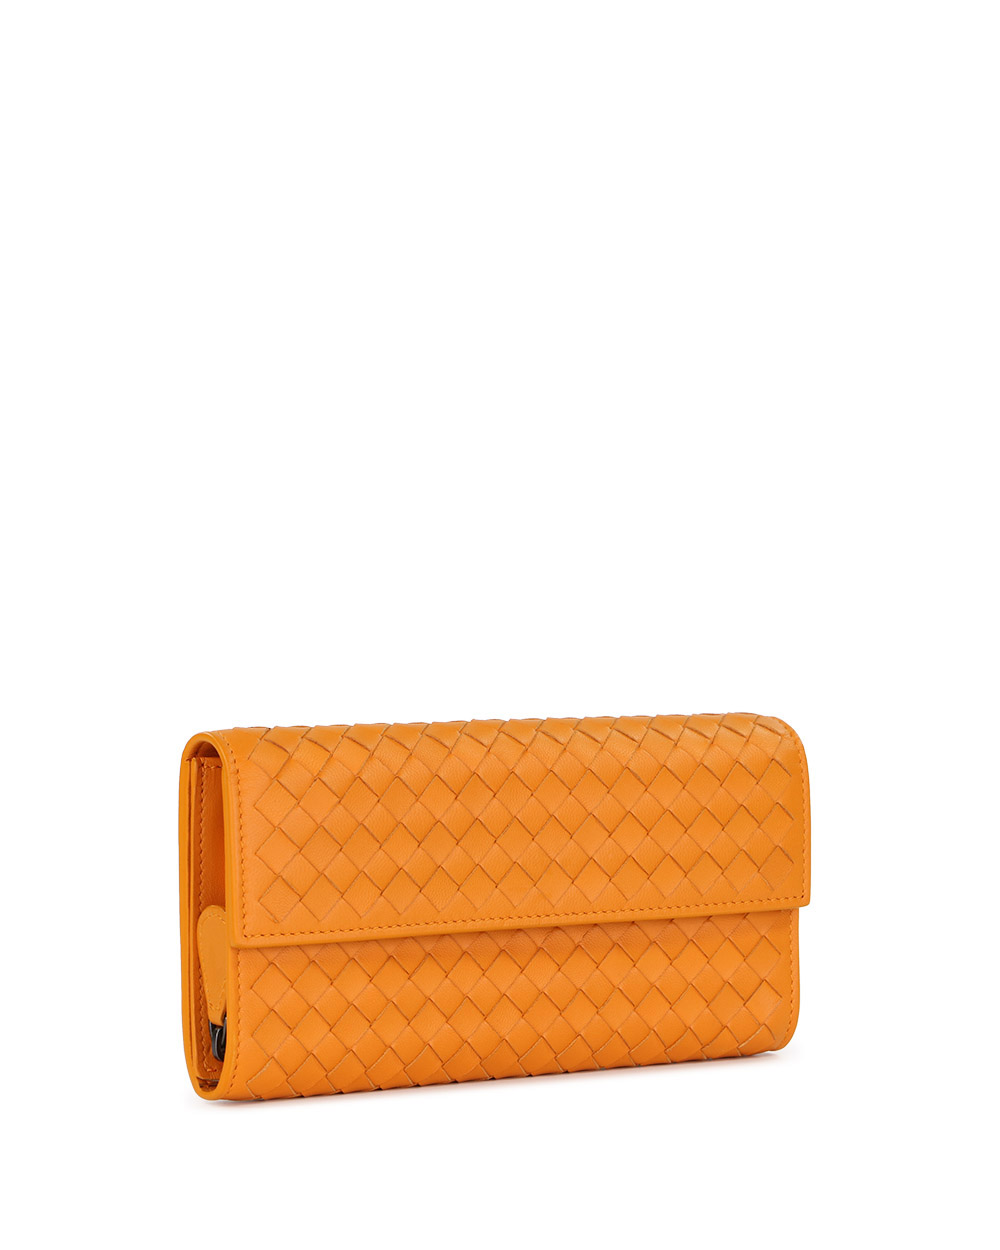 Woven Lamb Leather Long Wallet 3